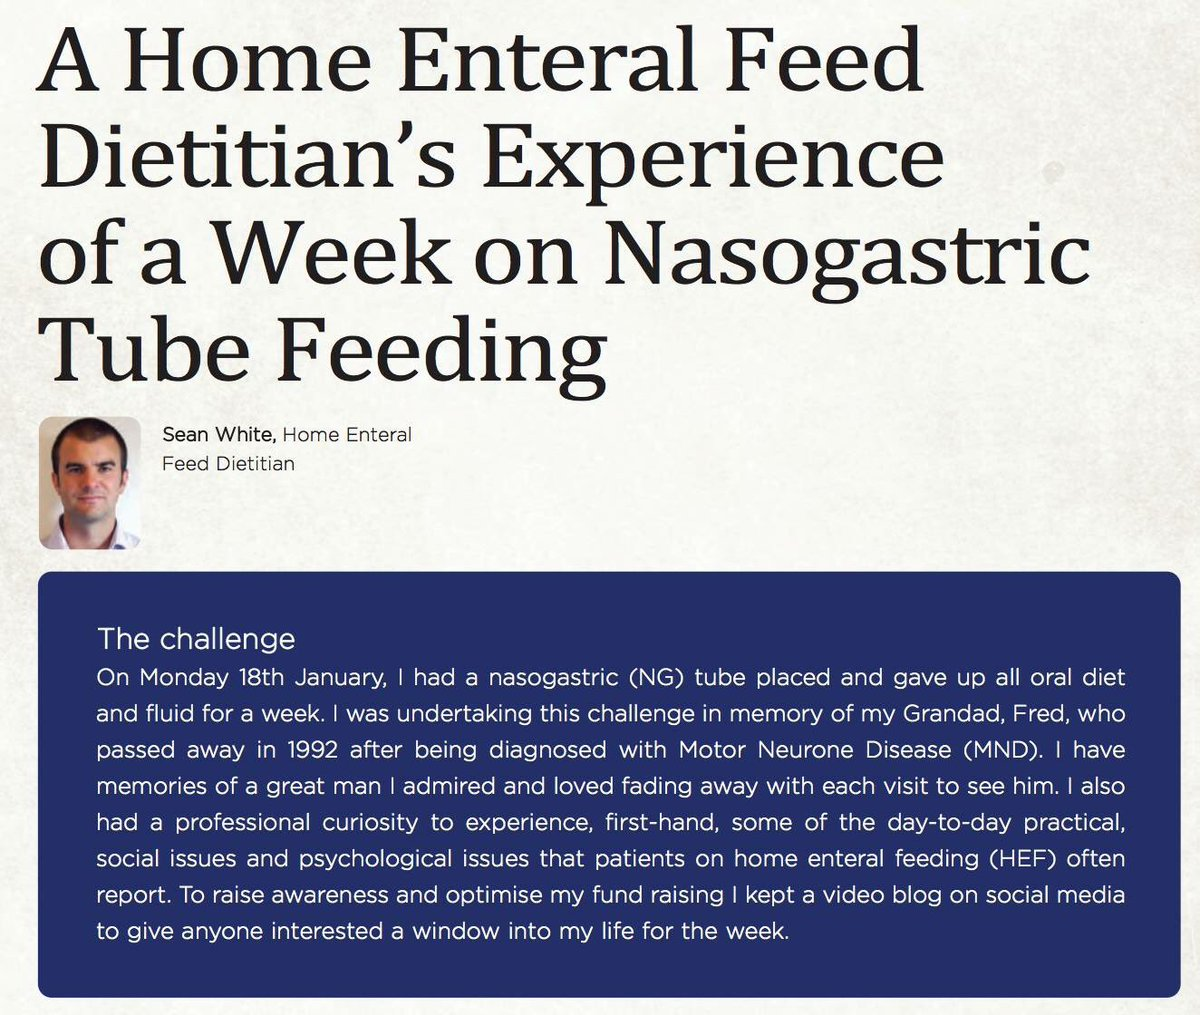 Must read for students studying #dietetics. Specialist home enteral nutrition #dietitian @seanwhite1977 sharing his experiences relying on a nasogastric tube for all nutrition &amp; hydration needs for an entire week   https://www. facebook.com/clinicaldietet ics/ &nbsp; … <br>http://pic.twitter.com/0WMyHUmK3A